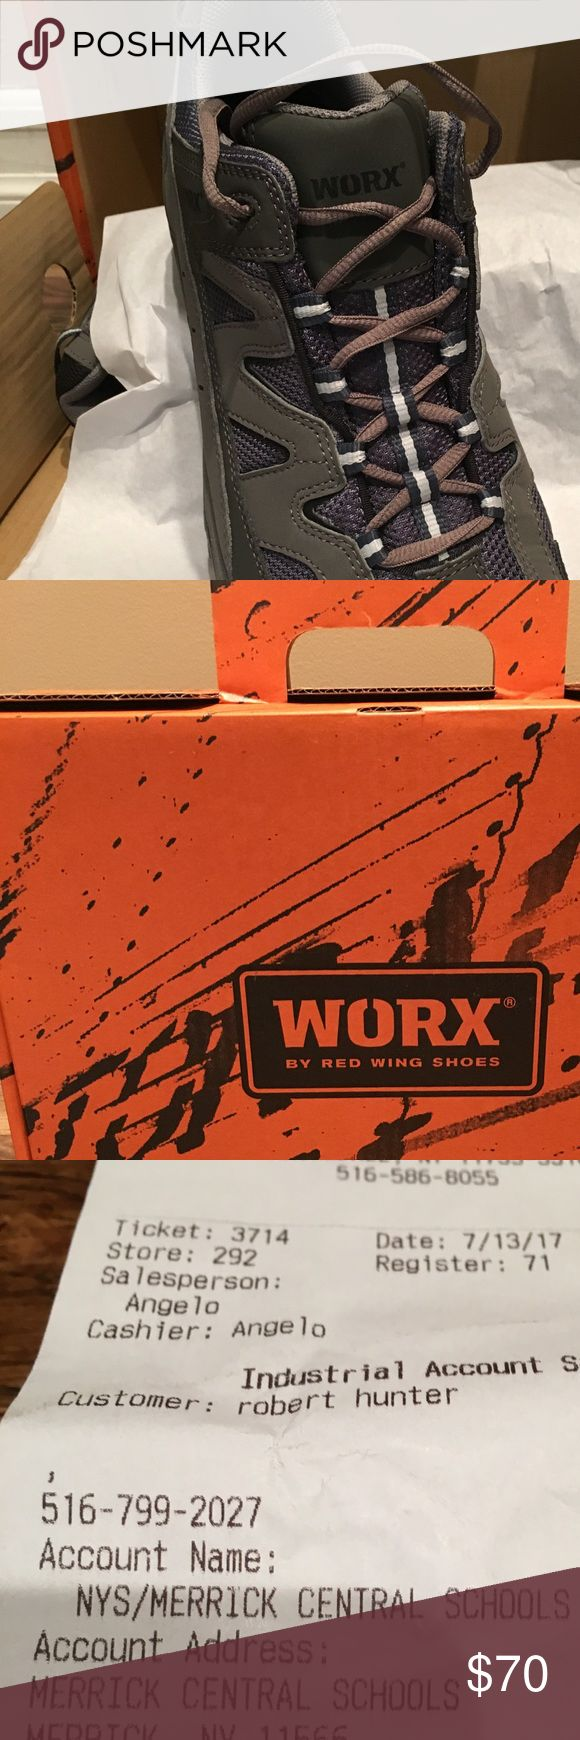 Worx men's work shoe. Brand new men's work shoe. Never worn. worx Shoes Ankle Boots & Booties